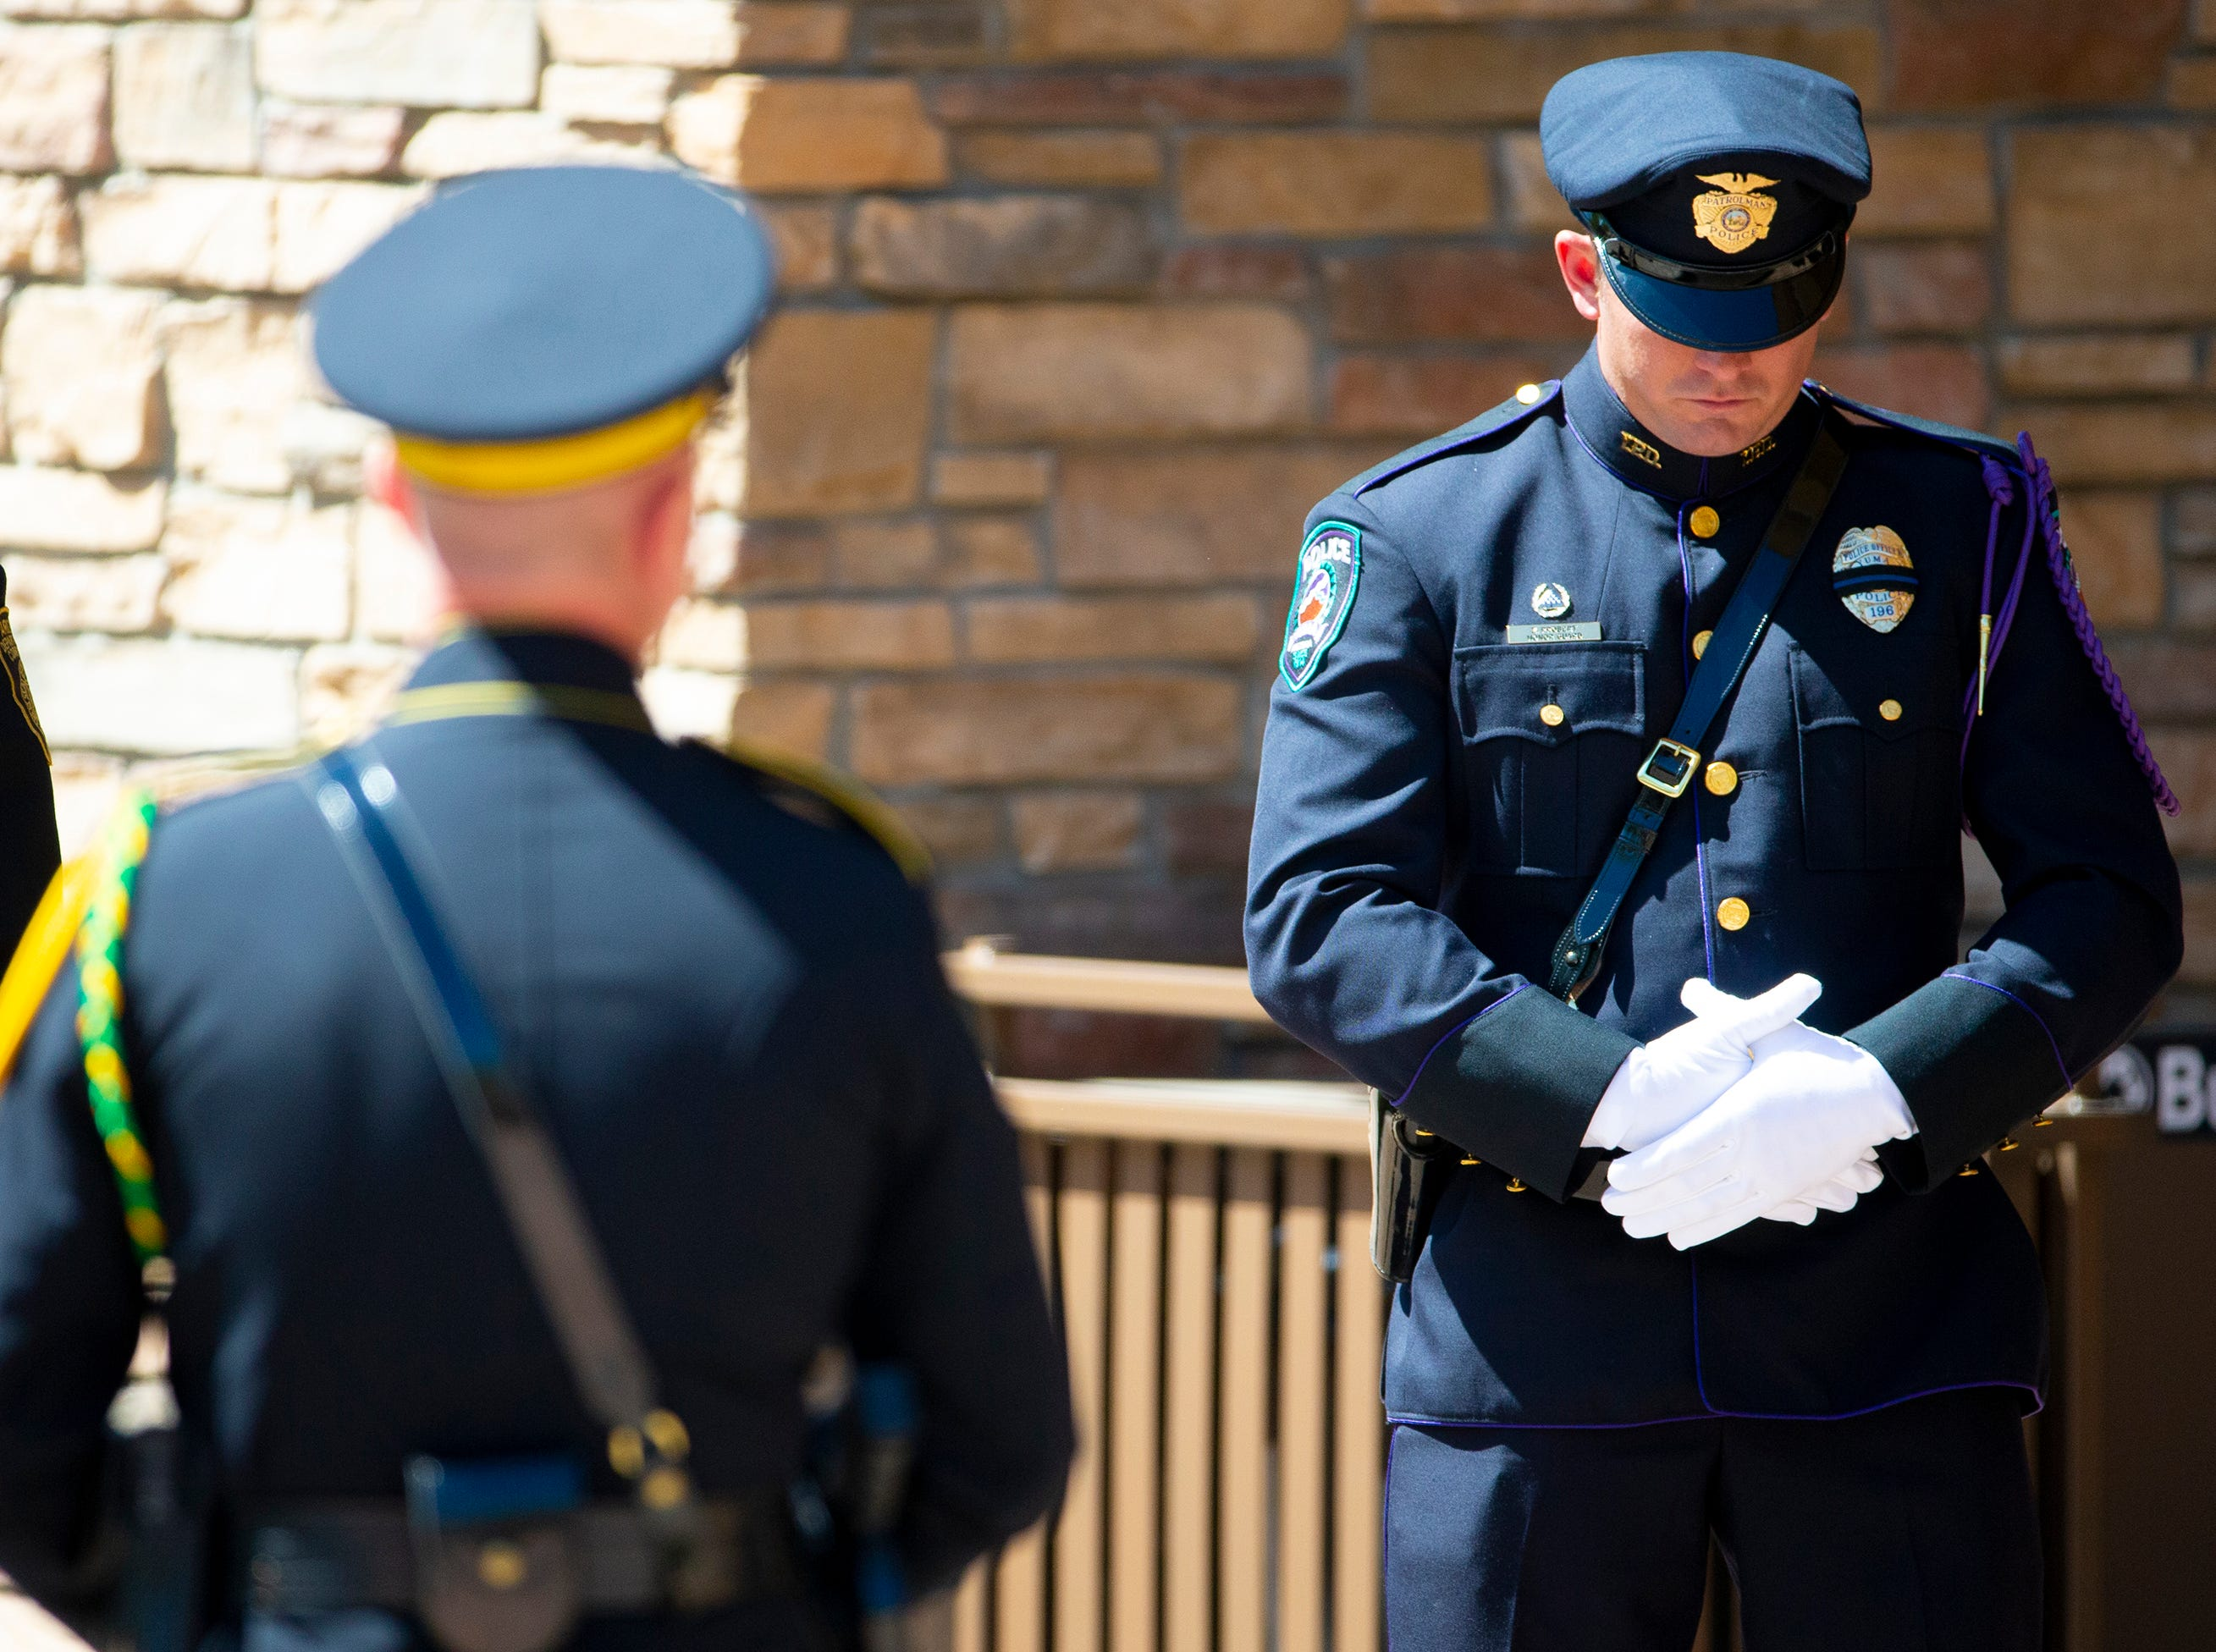 Law-enforcement officers honor Phoenix police Officer Paul Rutherford during funeral services at Christ's Church of the Valley in Peoria on March 28, 2019. Rutherford was killed during a crash investigation March 21.